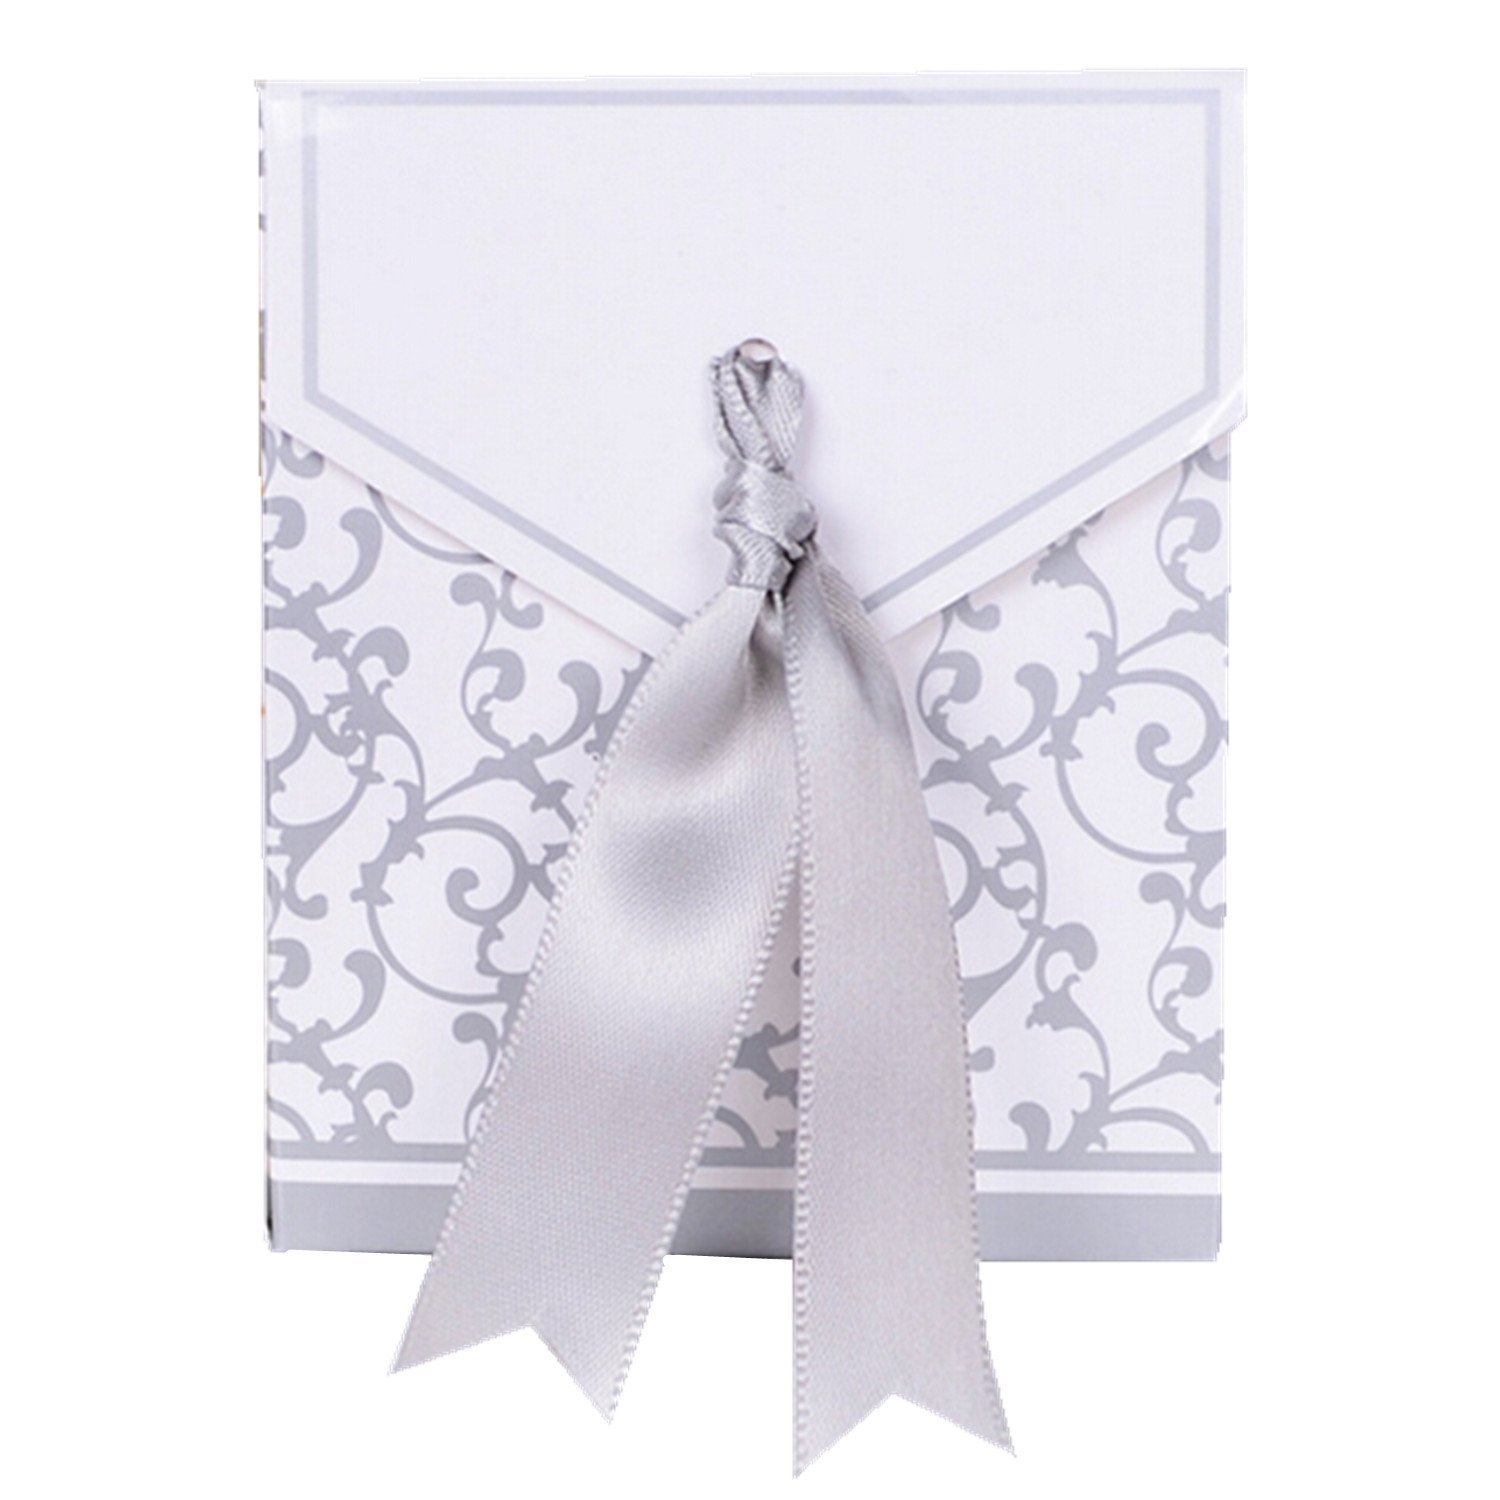 Cheap Favour Bags And Boxes, find Favour Bags And Boxes deals on ...